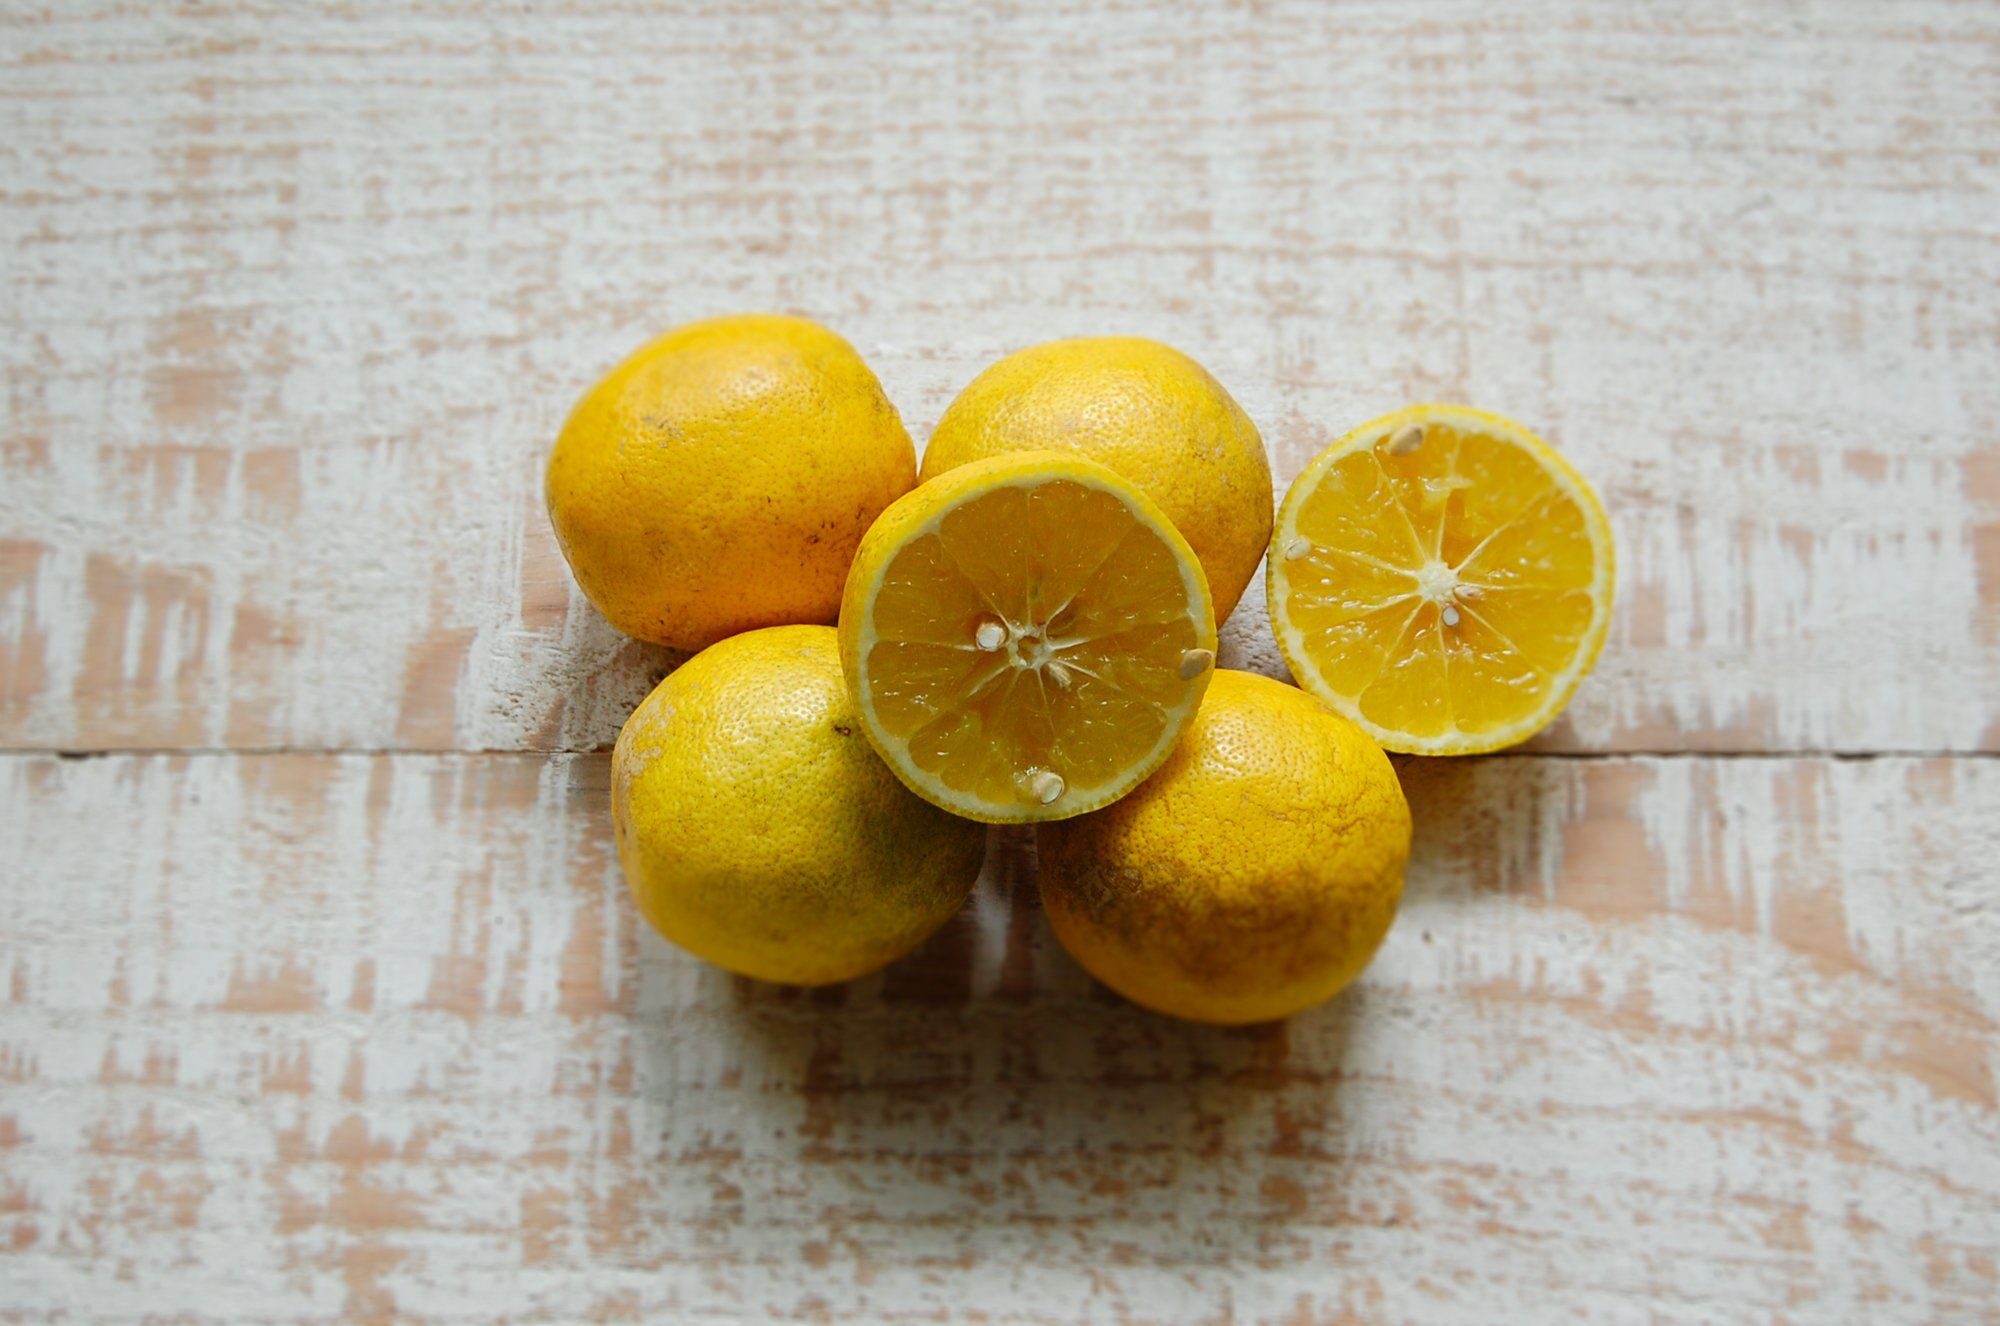 Lemonade (biodynamic)